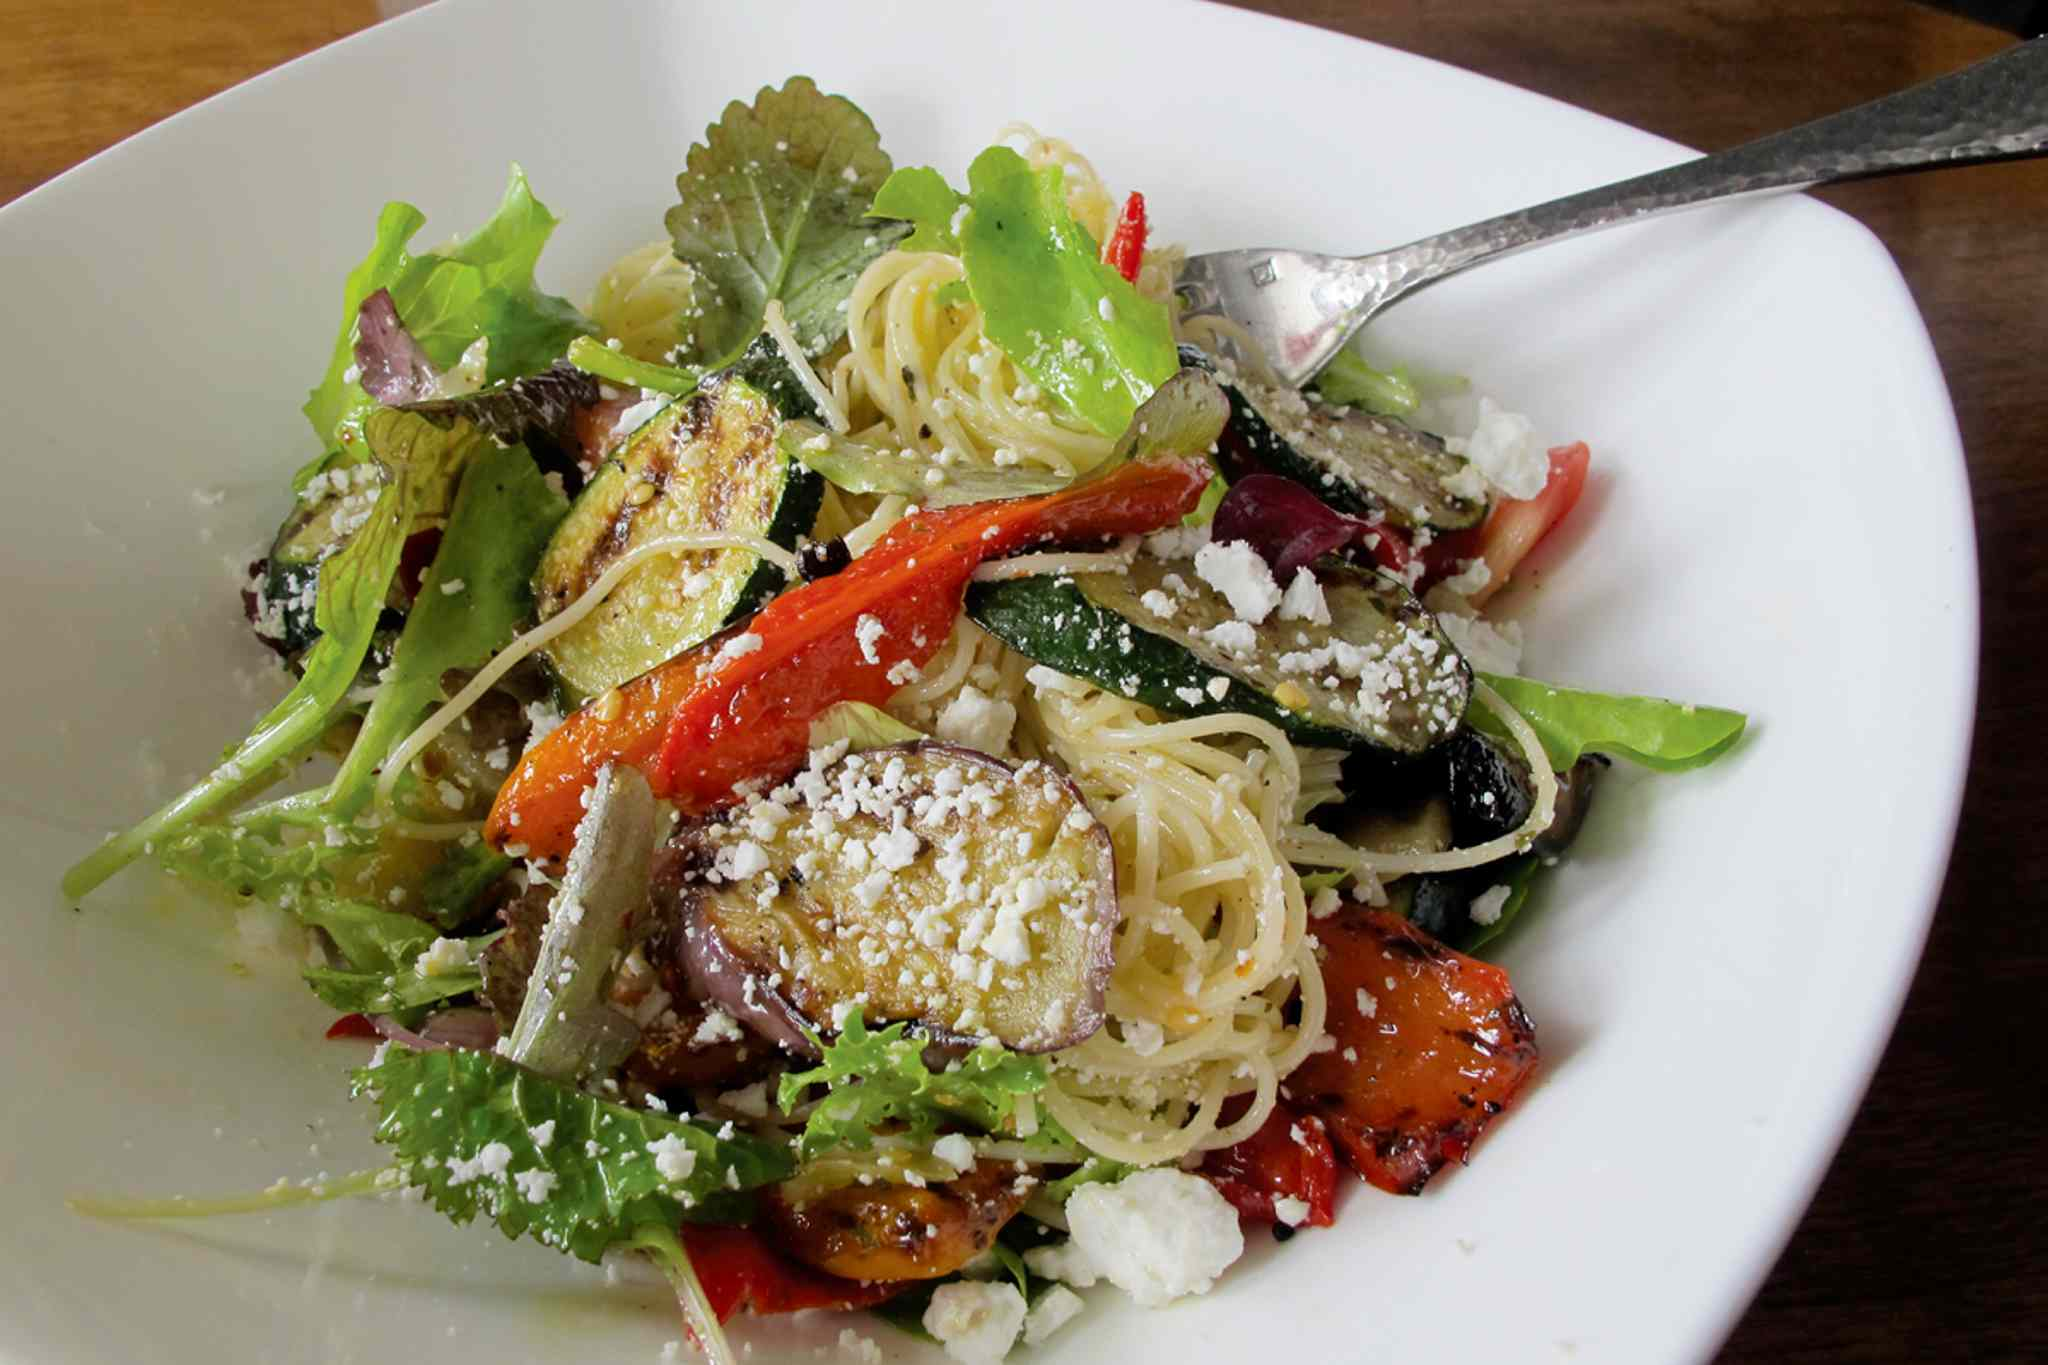 Mise is one of the many restaurants participating in Dine About Winnipeg. Pictured: the restaurant's angel hair pasta with grilled vegetables, concasse tomatoes, Kalamata olives, feta cheese, pickled eggplant, wilted greens and artichoke hearts, (which may not necessarily be among the dishes offered).